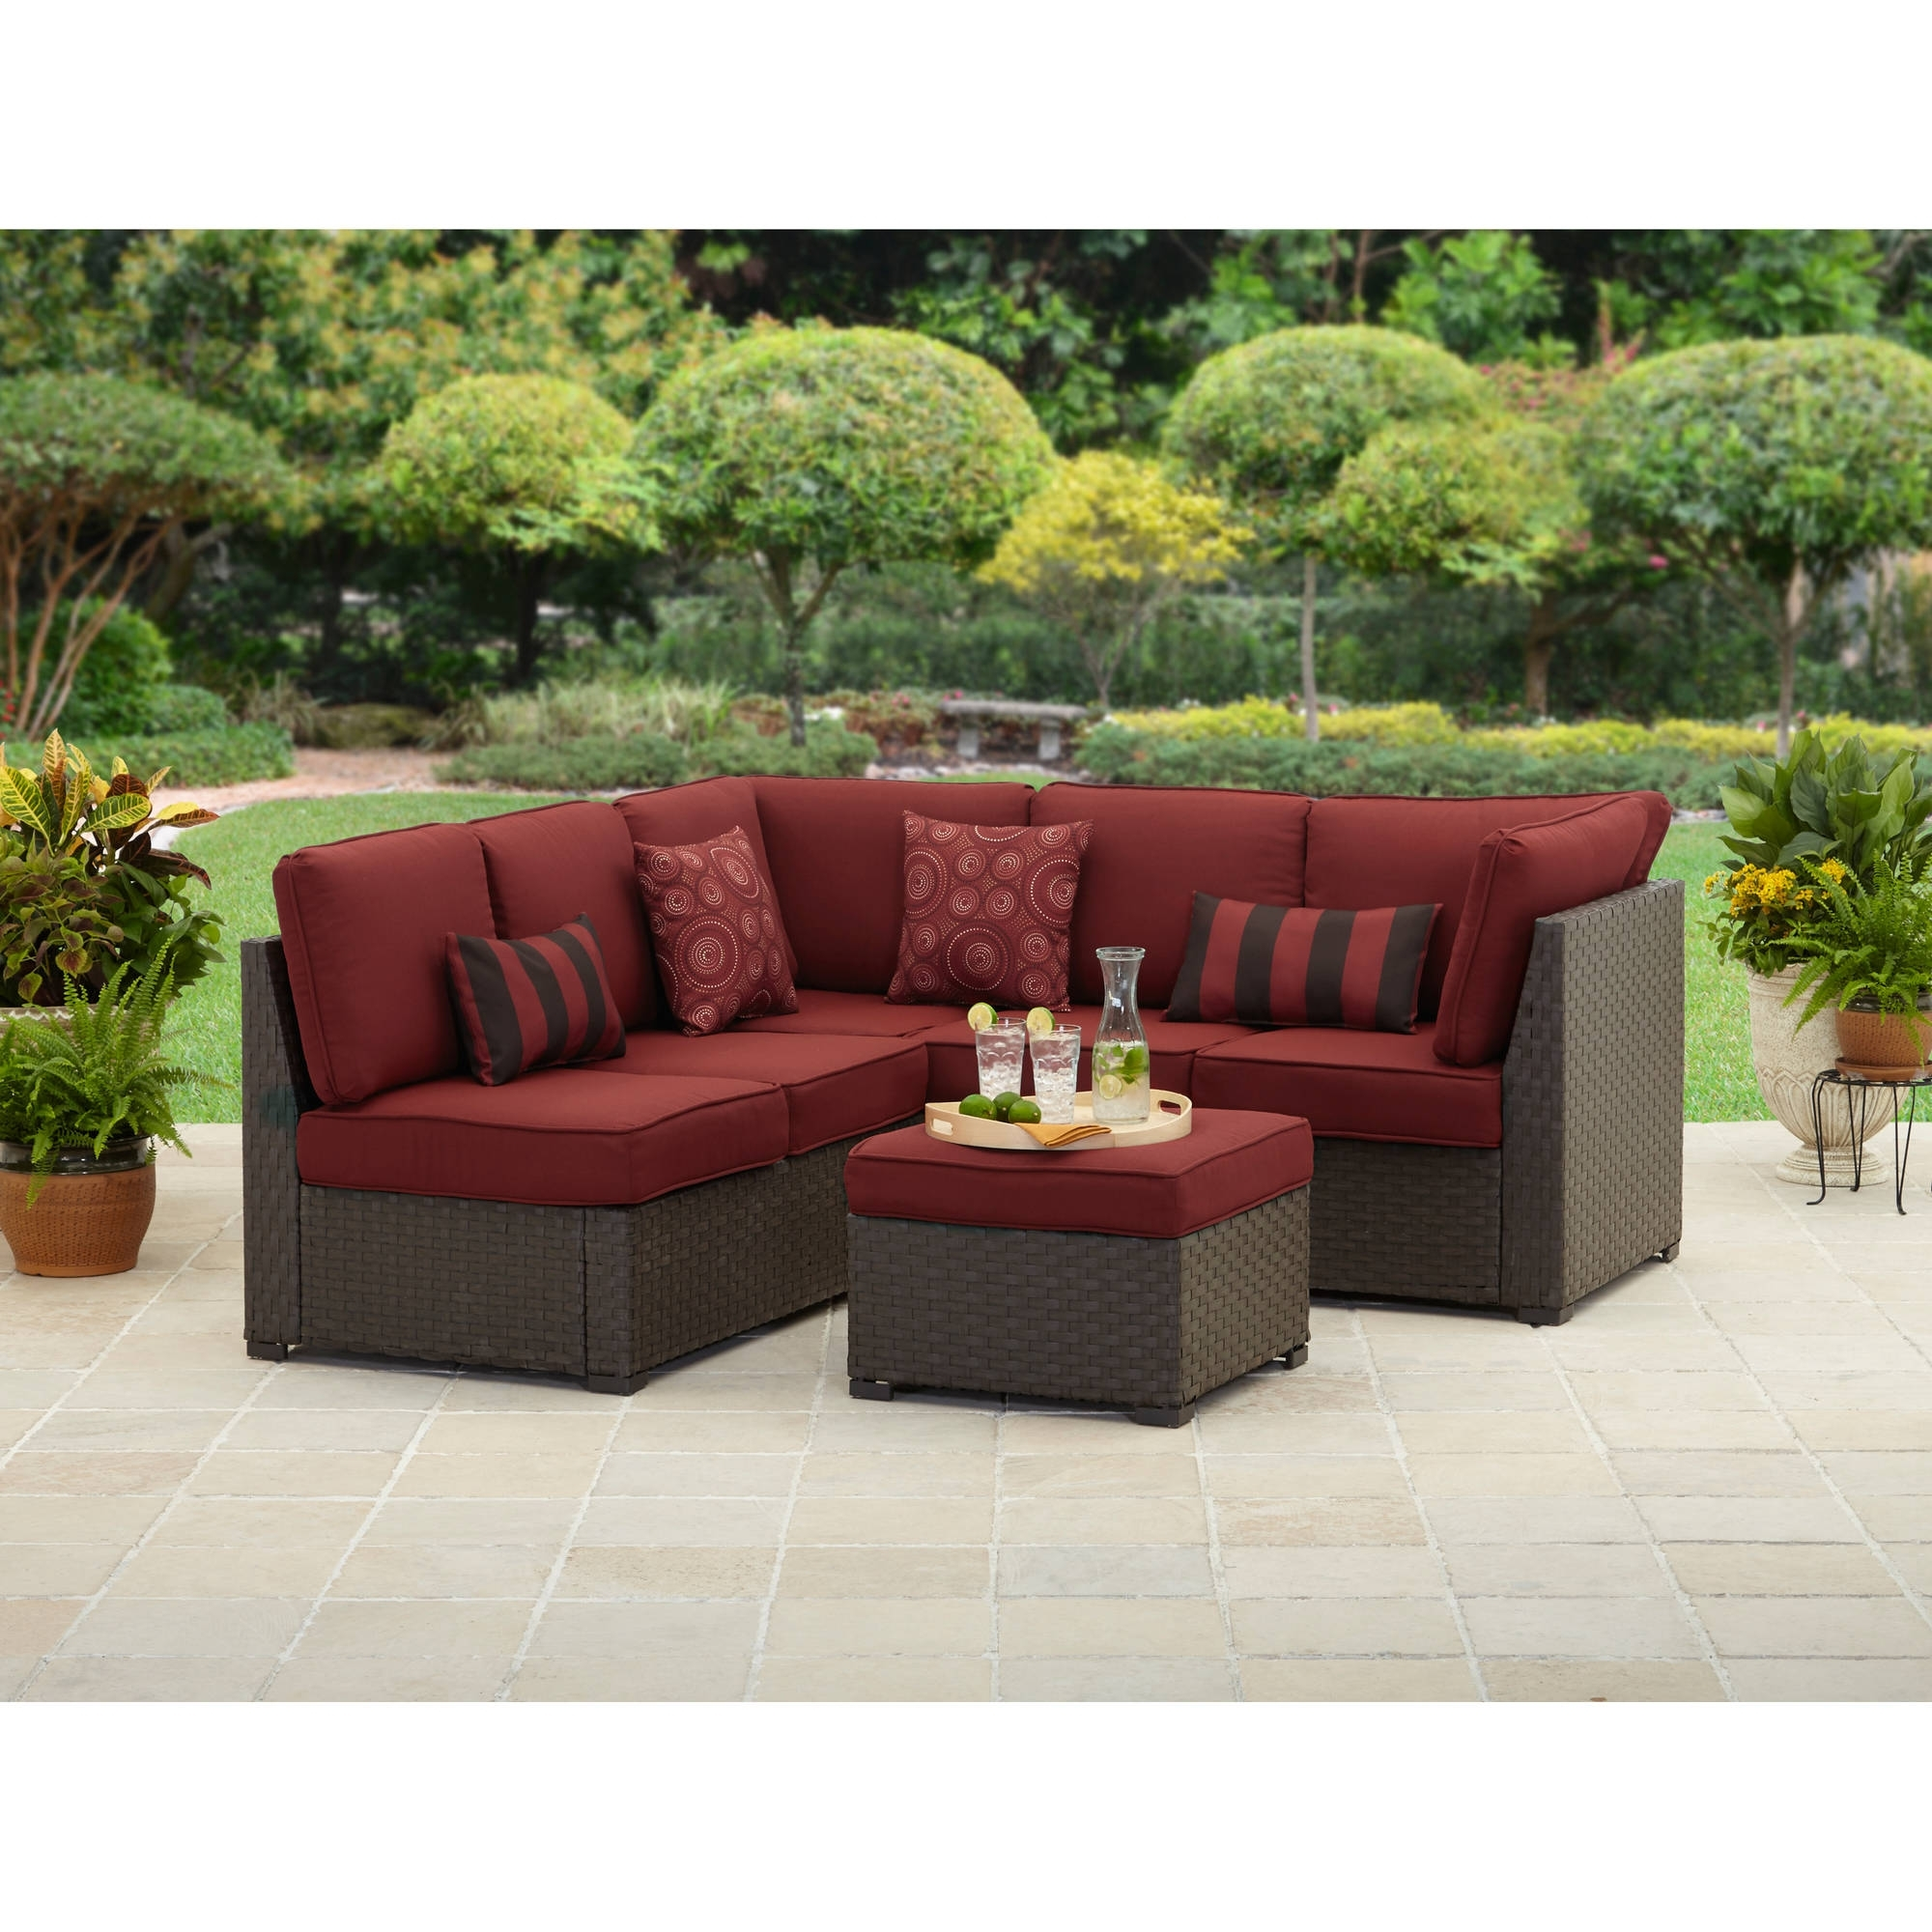 Better Homes And Gardens Rush Valley 3 Piece Outdoor Sectional In Most Recent Patio Conversation Sets At Walmart (View 2 of 15)